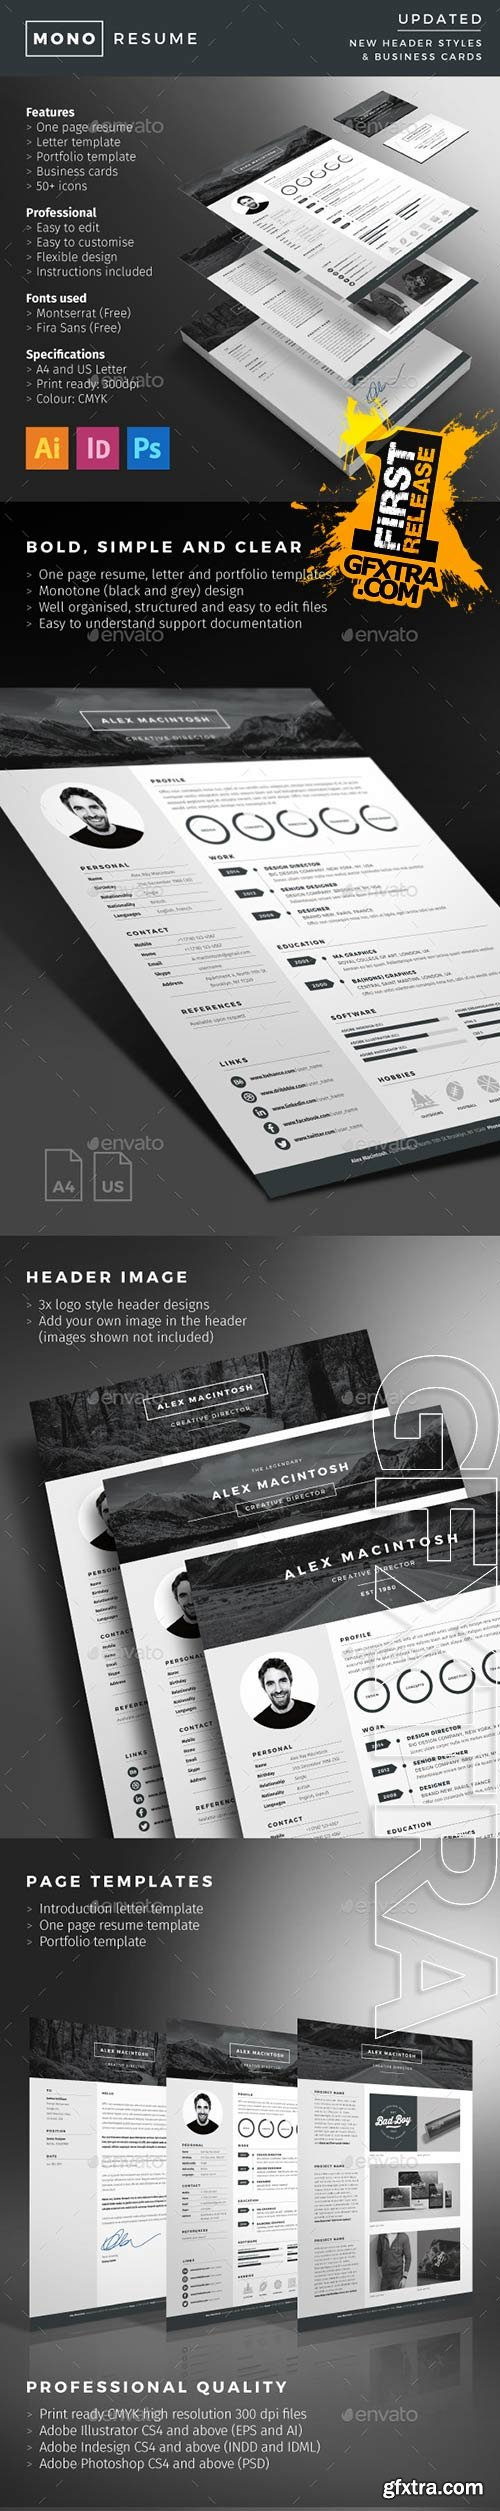 Buy Mono Resume by ikonome on GraphicRiver